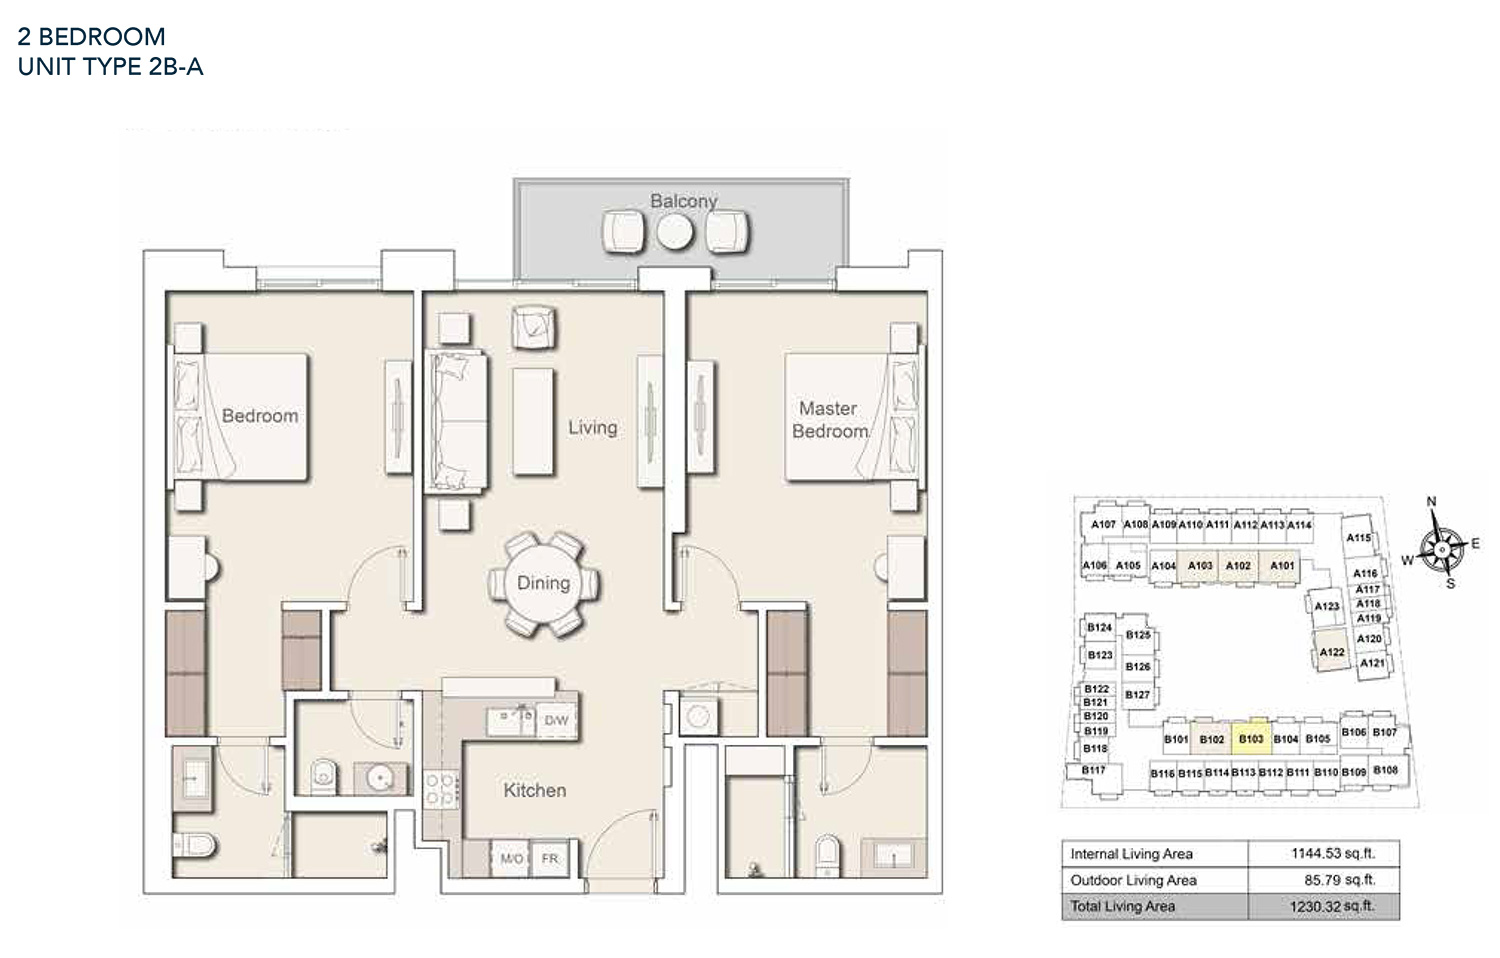 2 Bedroom  Unit Type - 2B A, Size 1230.32 sq.ft.